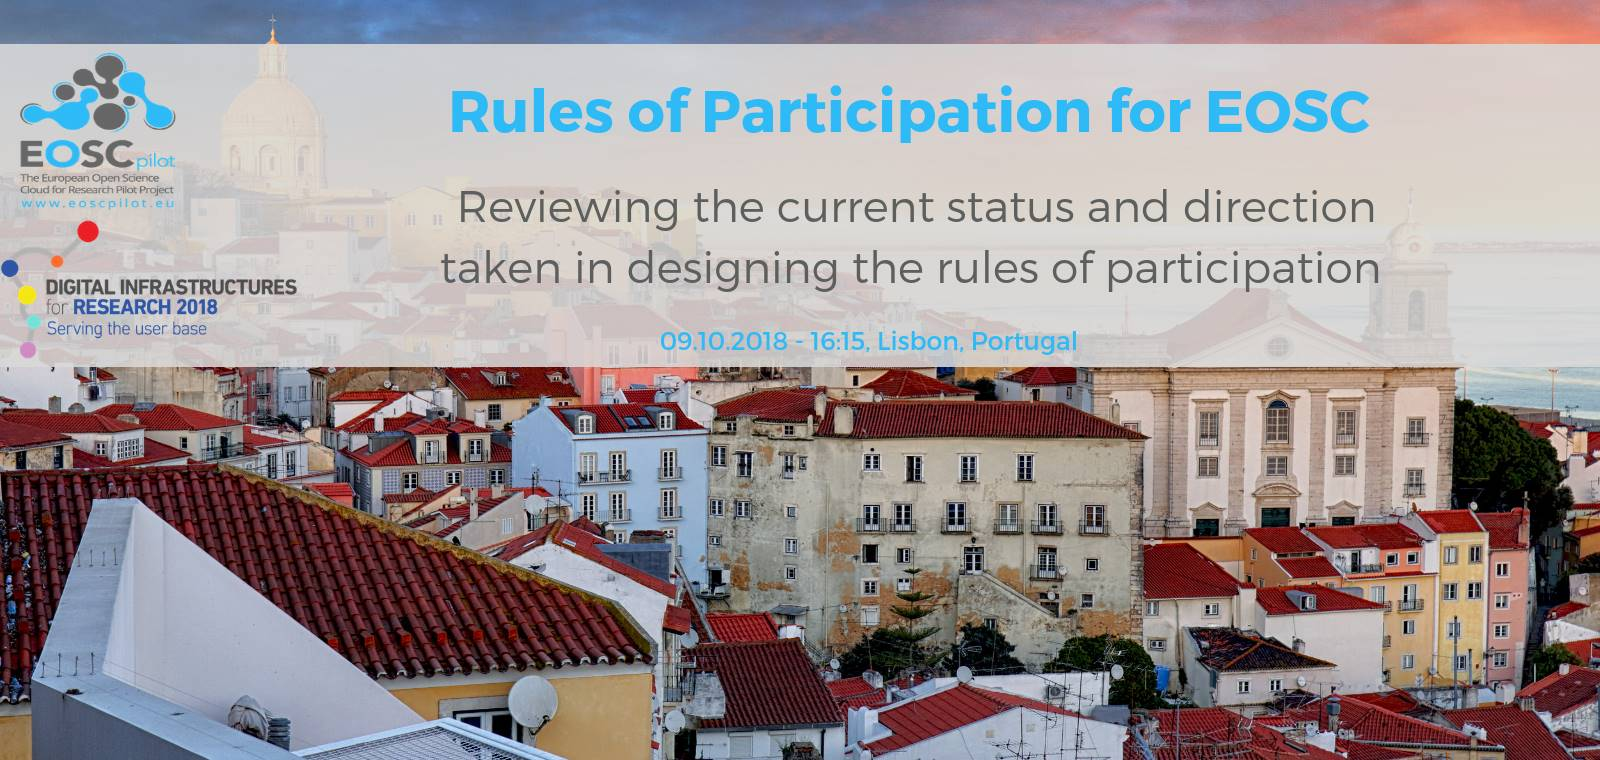 Rules of Participation for EOSC